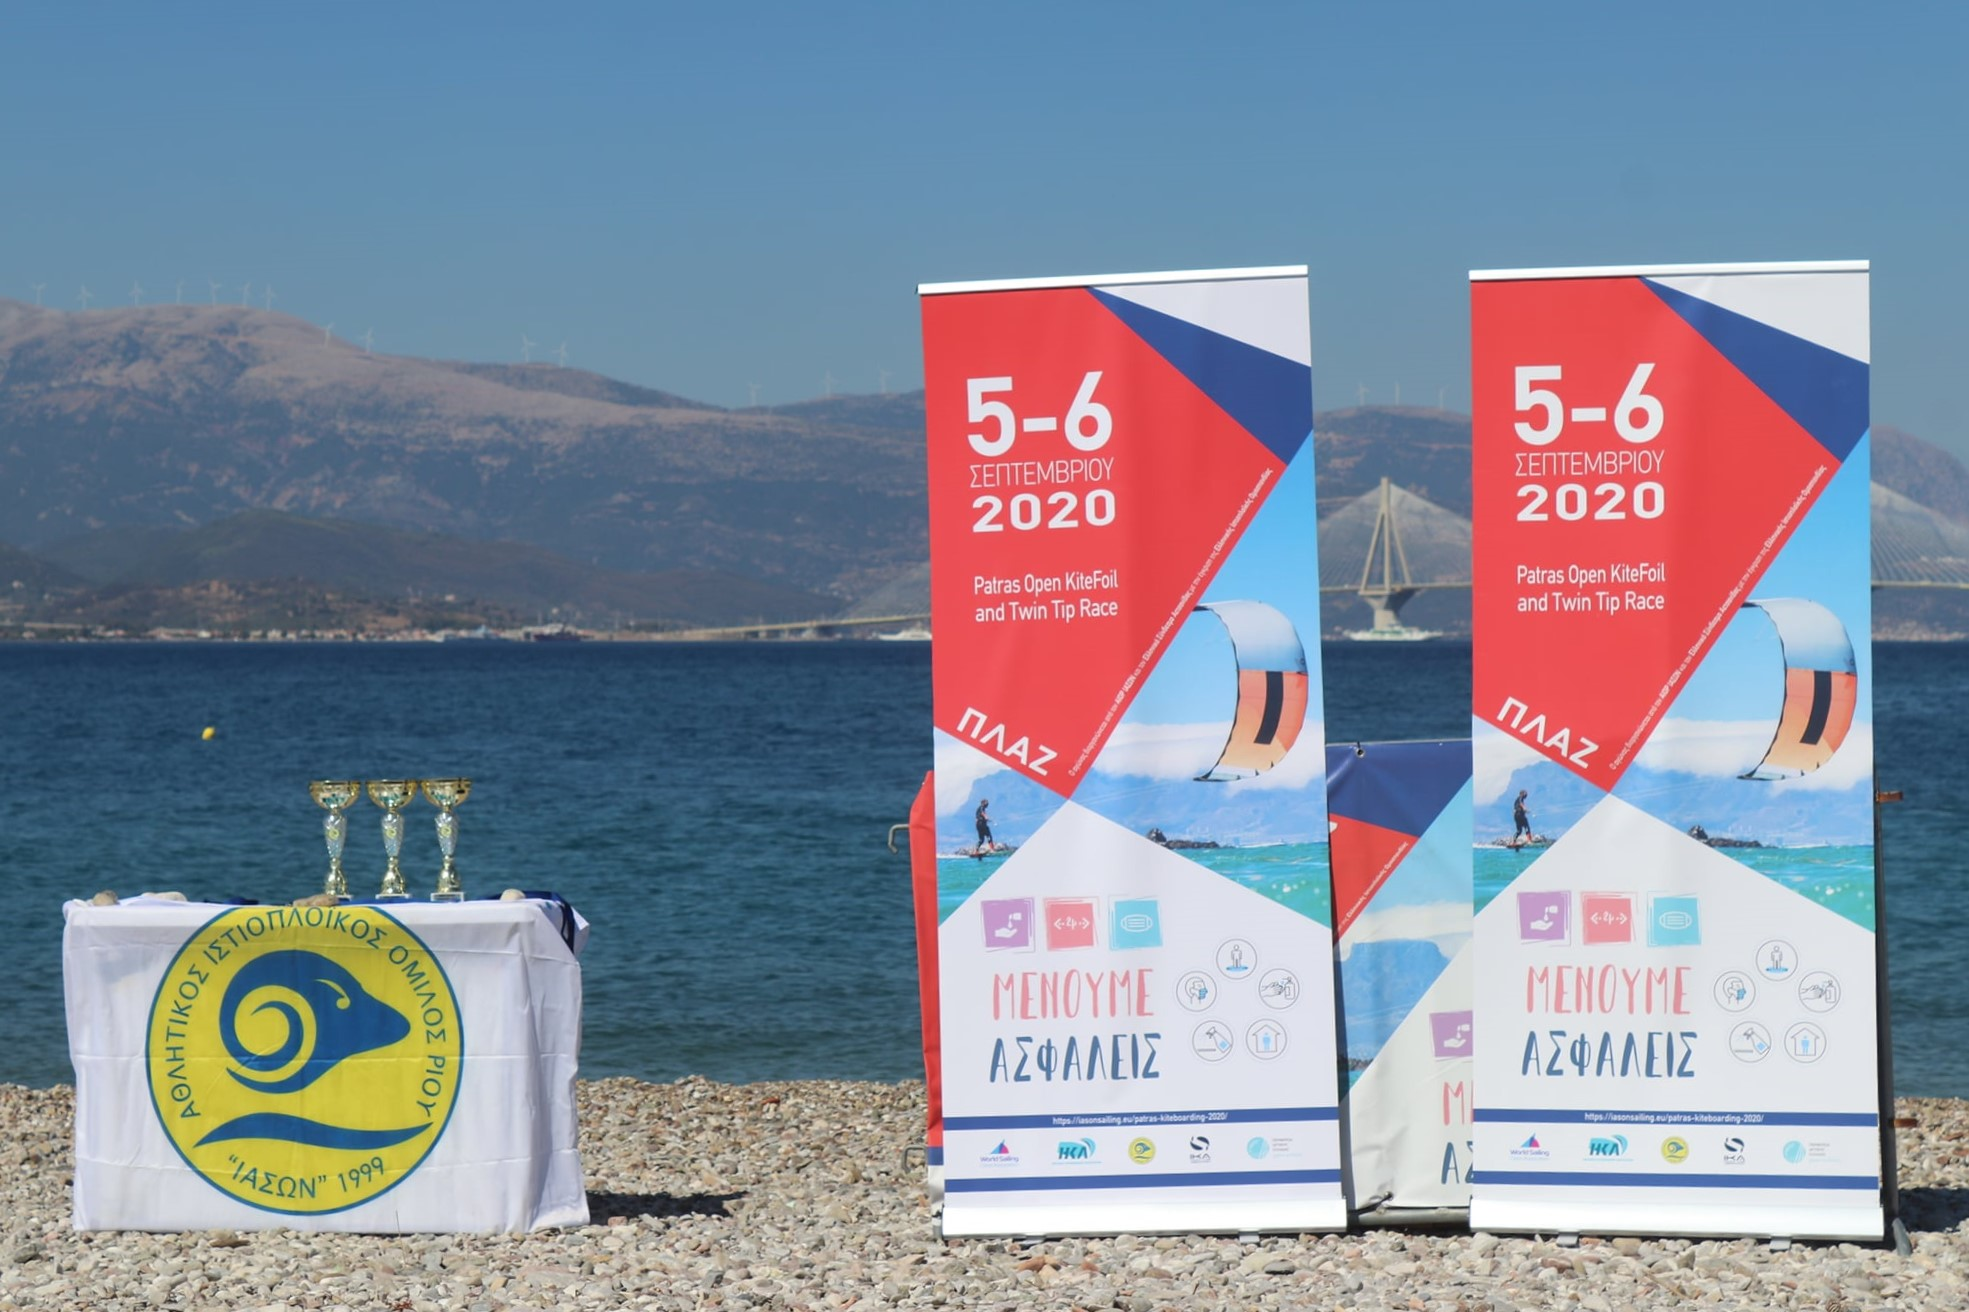 hka-patras-kitefoil-and-twintip-race-2020-024